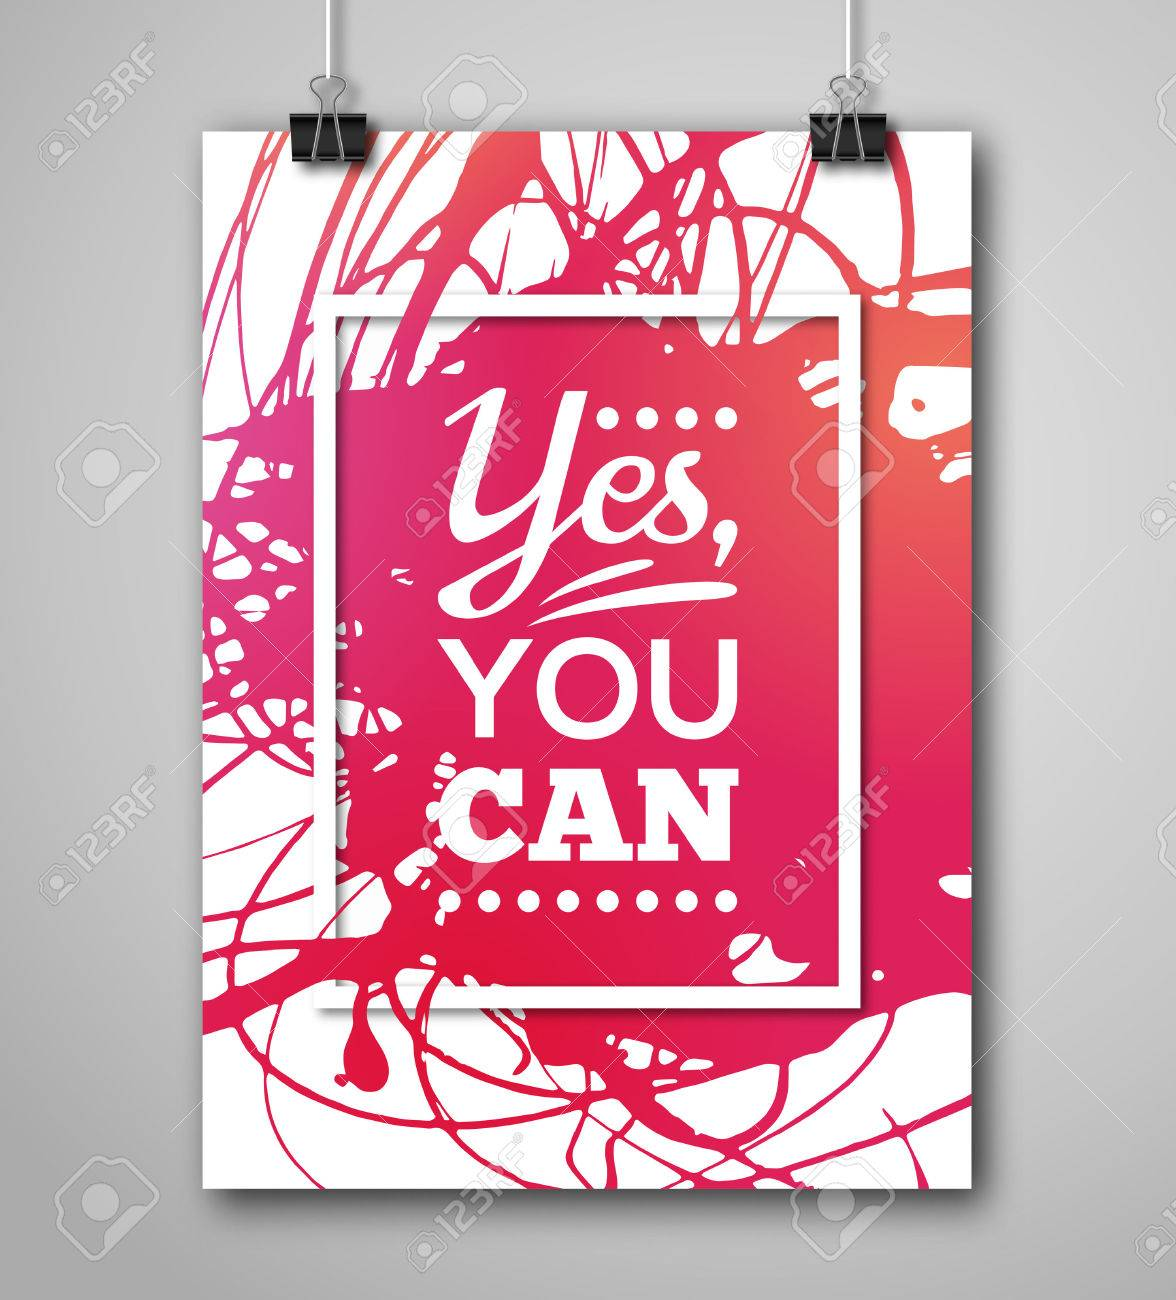 Motivational Poster Square Frame With Paint Splash Text Lettering